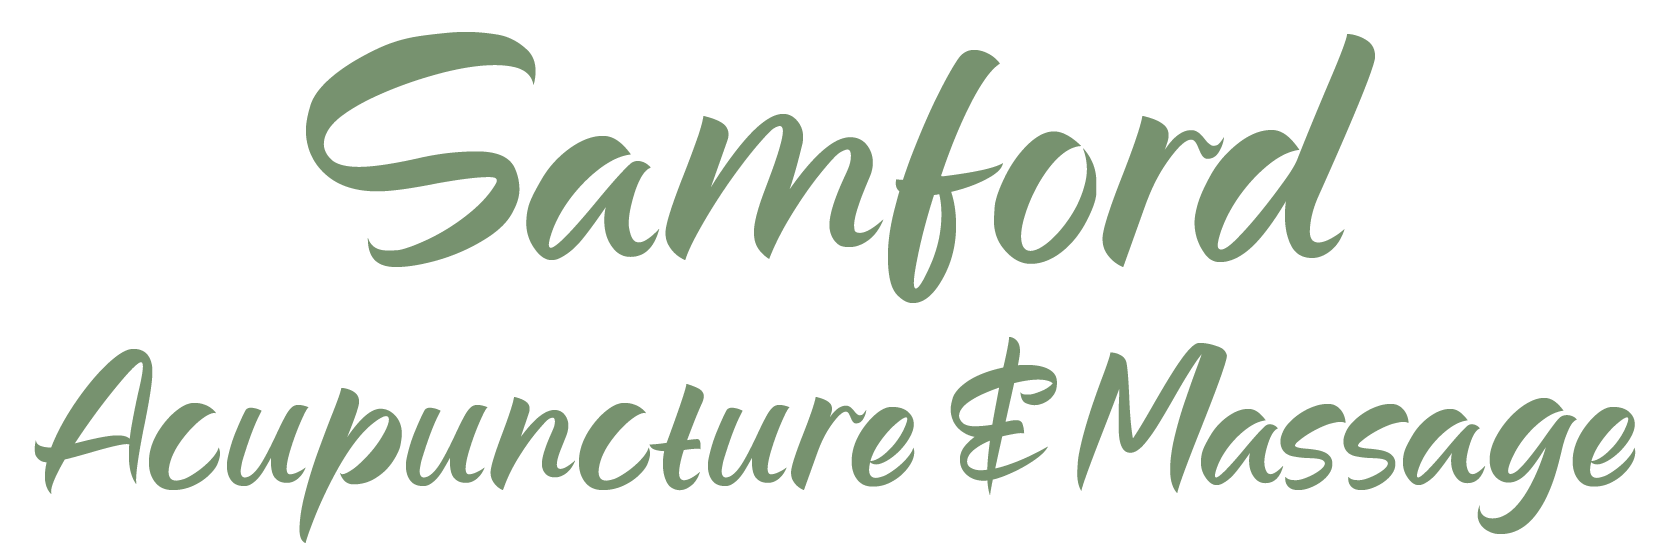 Samford Acupuncture and Massage